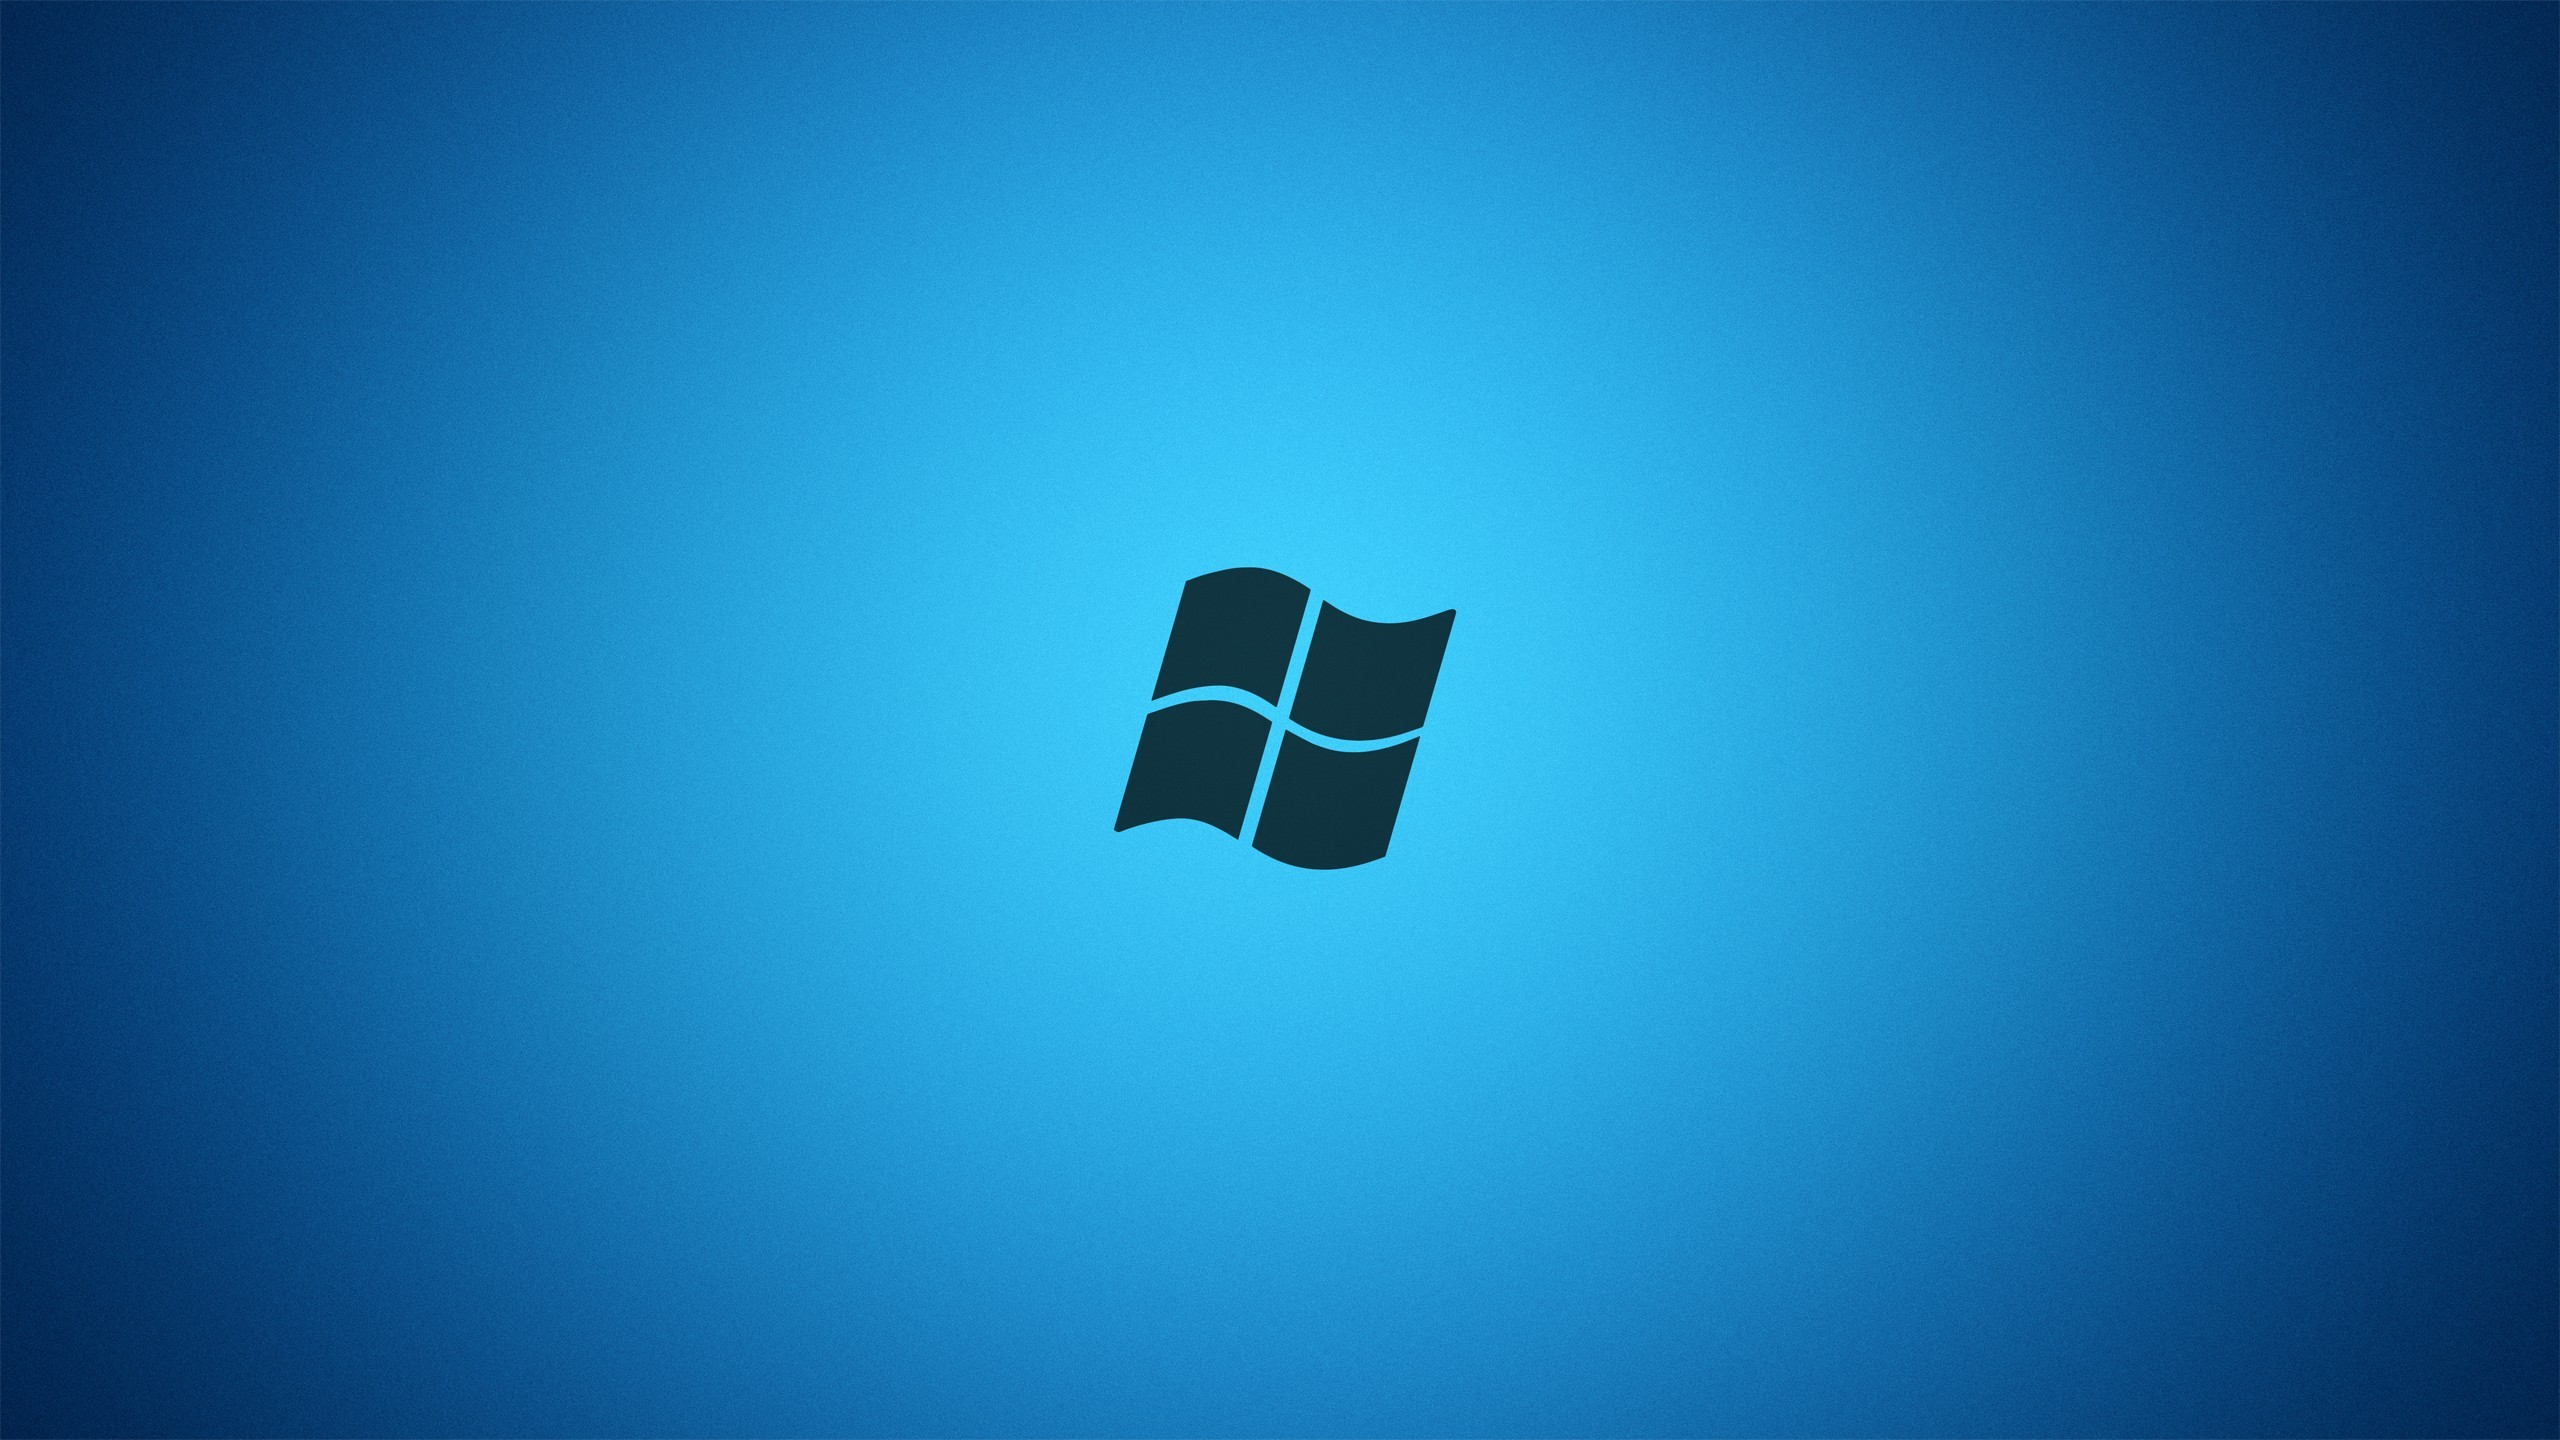 Windows 7 Simple Hd Computer 4k Wallpapers Images